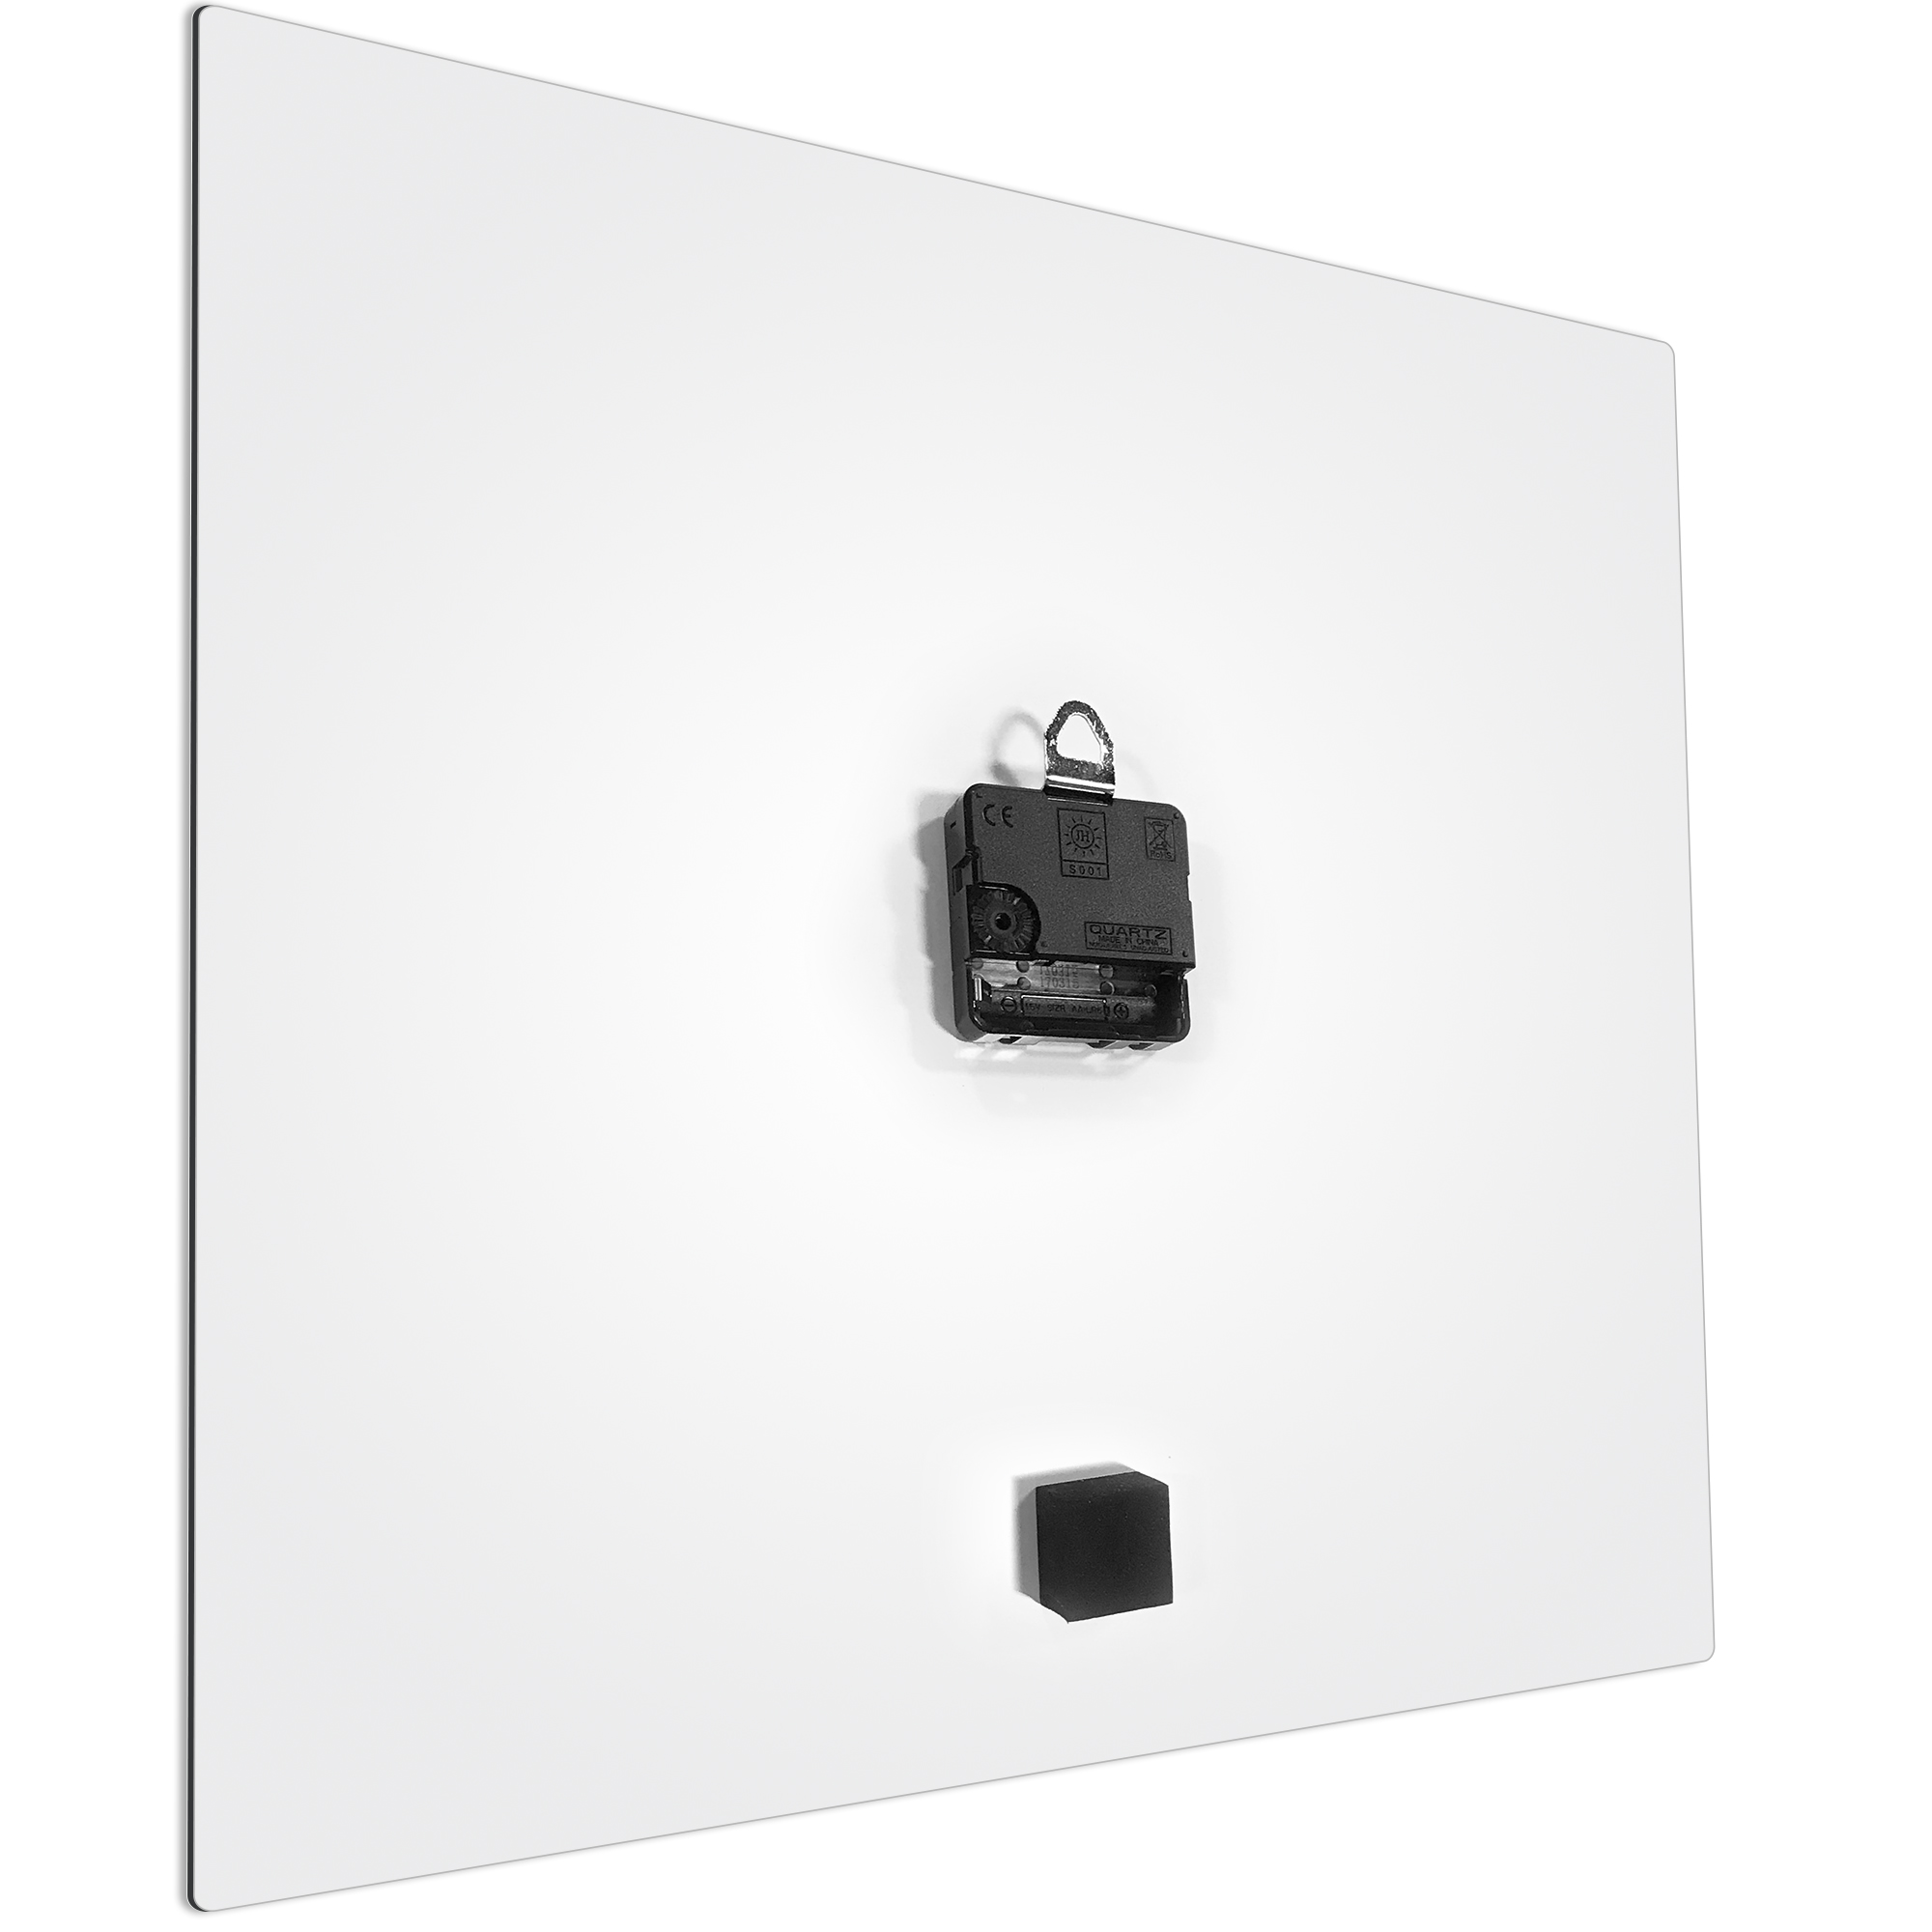 Redout White Square Clock Large by Adam Schwoeppe Contemporary Clock on Aluminum Polymetal - Alternate View 3